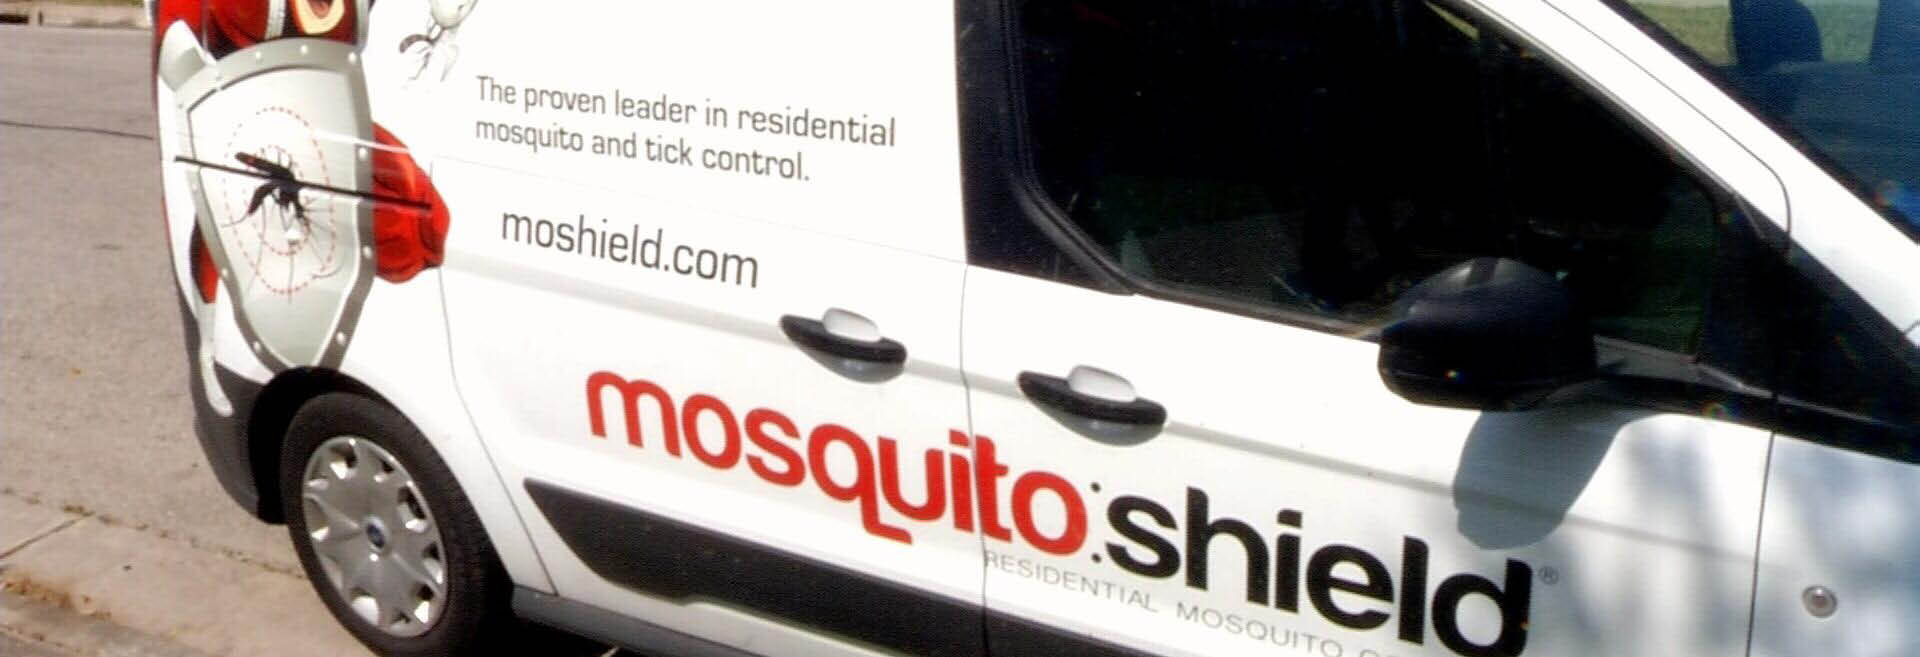 Full Service Mosquito and Pest Company.  Mosquito Shield of the North Shore